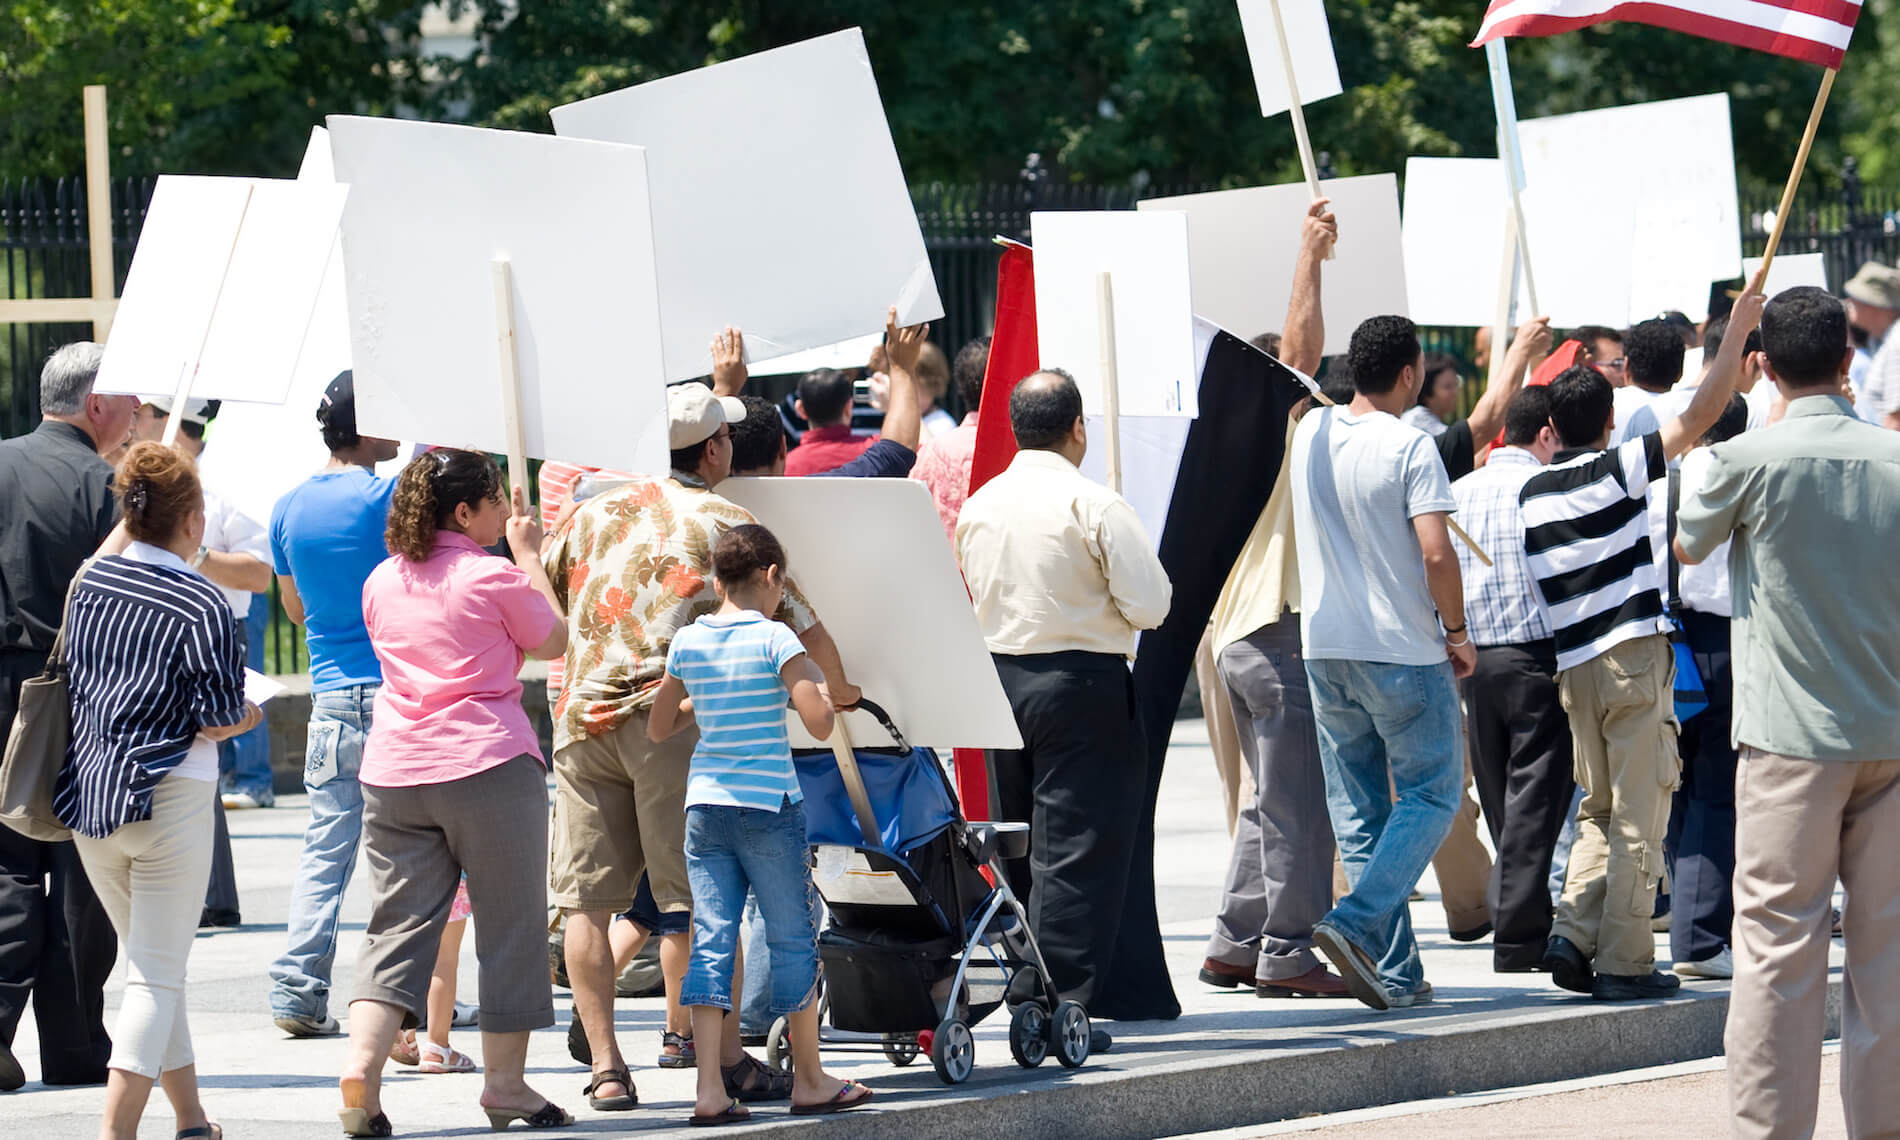 A group of peaceful protestors with banners and posters